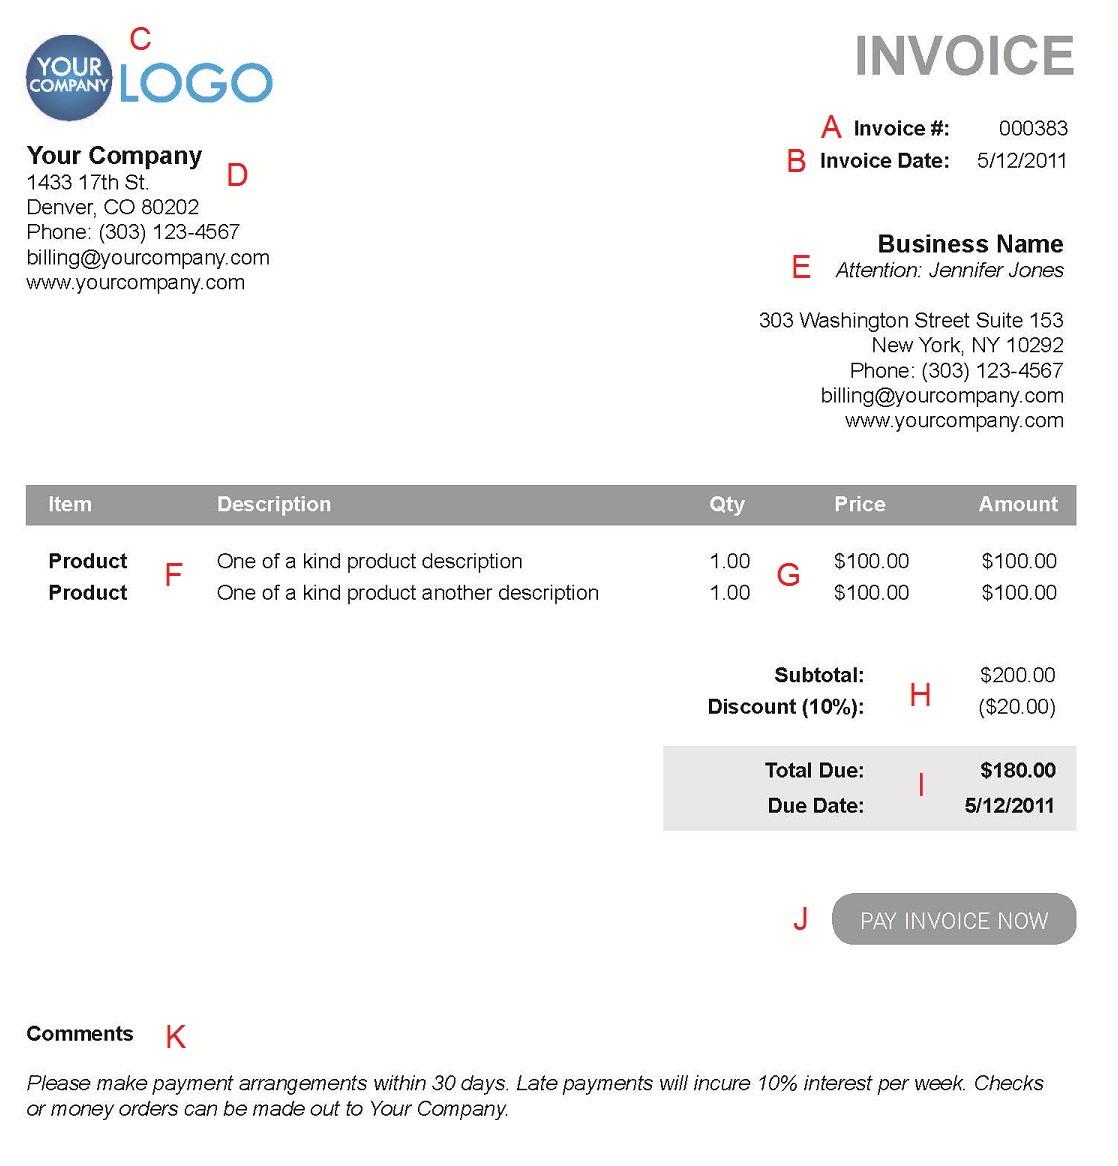 Coolmathgamesus  Mesmerizing The  Different Sections Of An Electronic Payment Invoice With Exciting A  With Agreeable Is Receipt Hog Safe Also Money Receipt Book In Addition Wilkinsons Returns Policy No Receipt And Acknowledge Receipt Of This Email As Well As Receiptive Additionally Receipt For Hot Wings From Paysimplecom With Coolmathgamesus  Exciting The  Different Sections Of An Electronic Payment Invoice With Agreeable A  And Mesmerizing Is Receipt Hog Safe Also Money Receipt Book In Addition Wilkinsons Returns Policy No Receipt From Paysimplecom